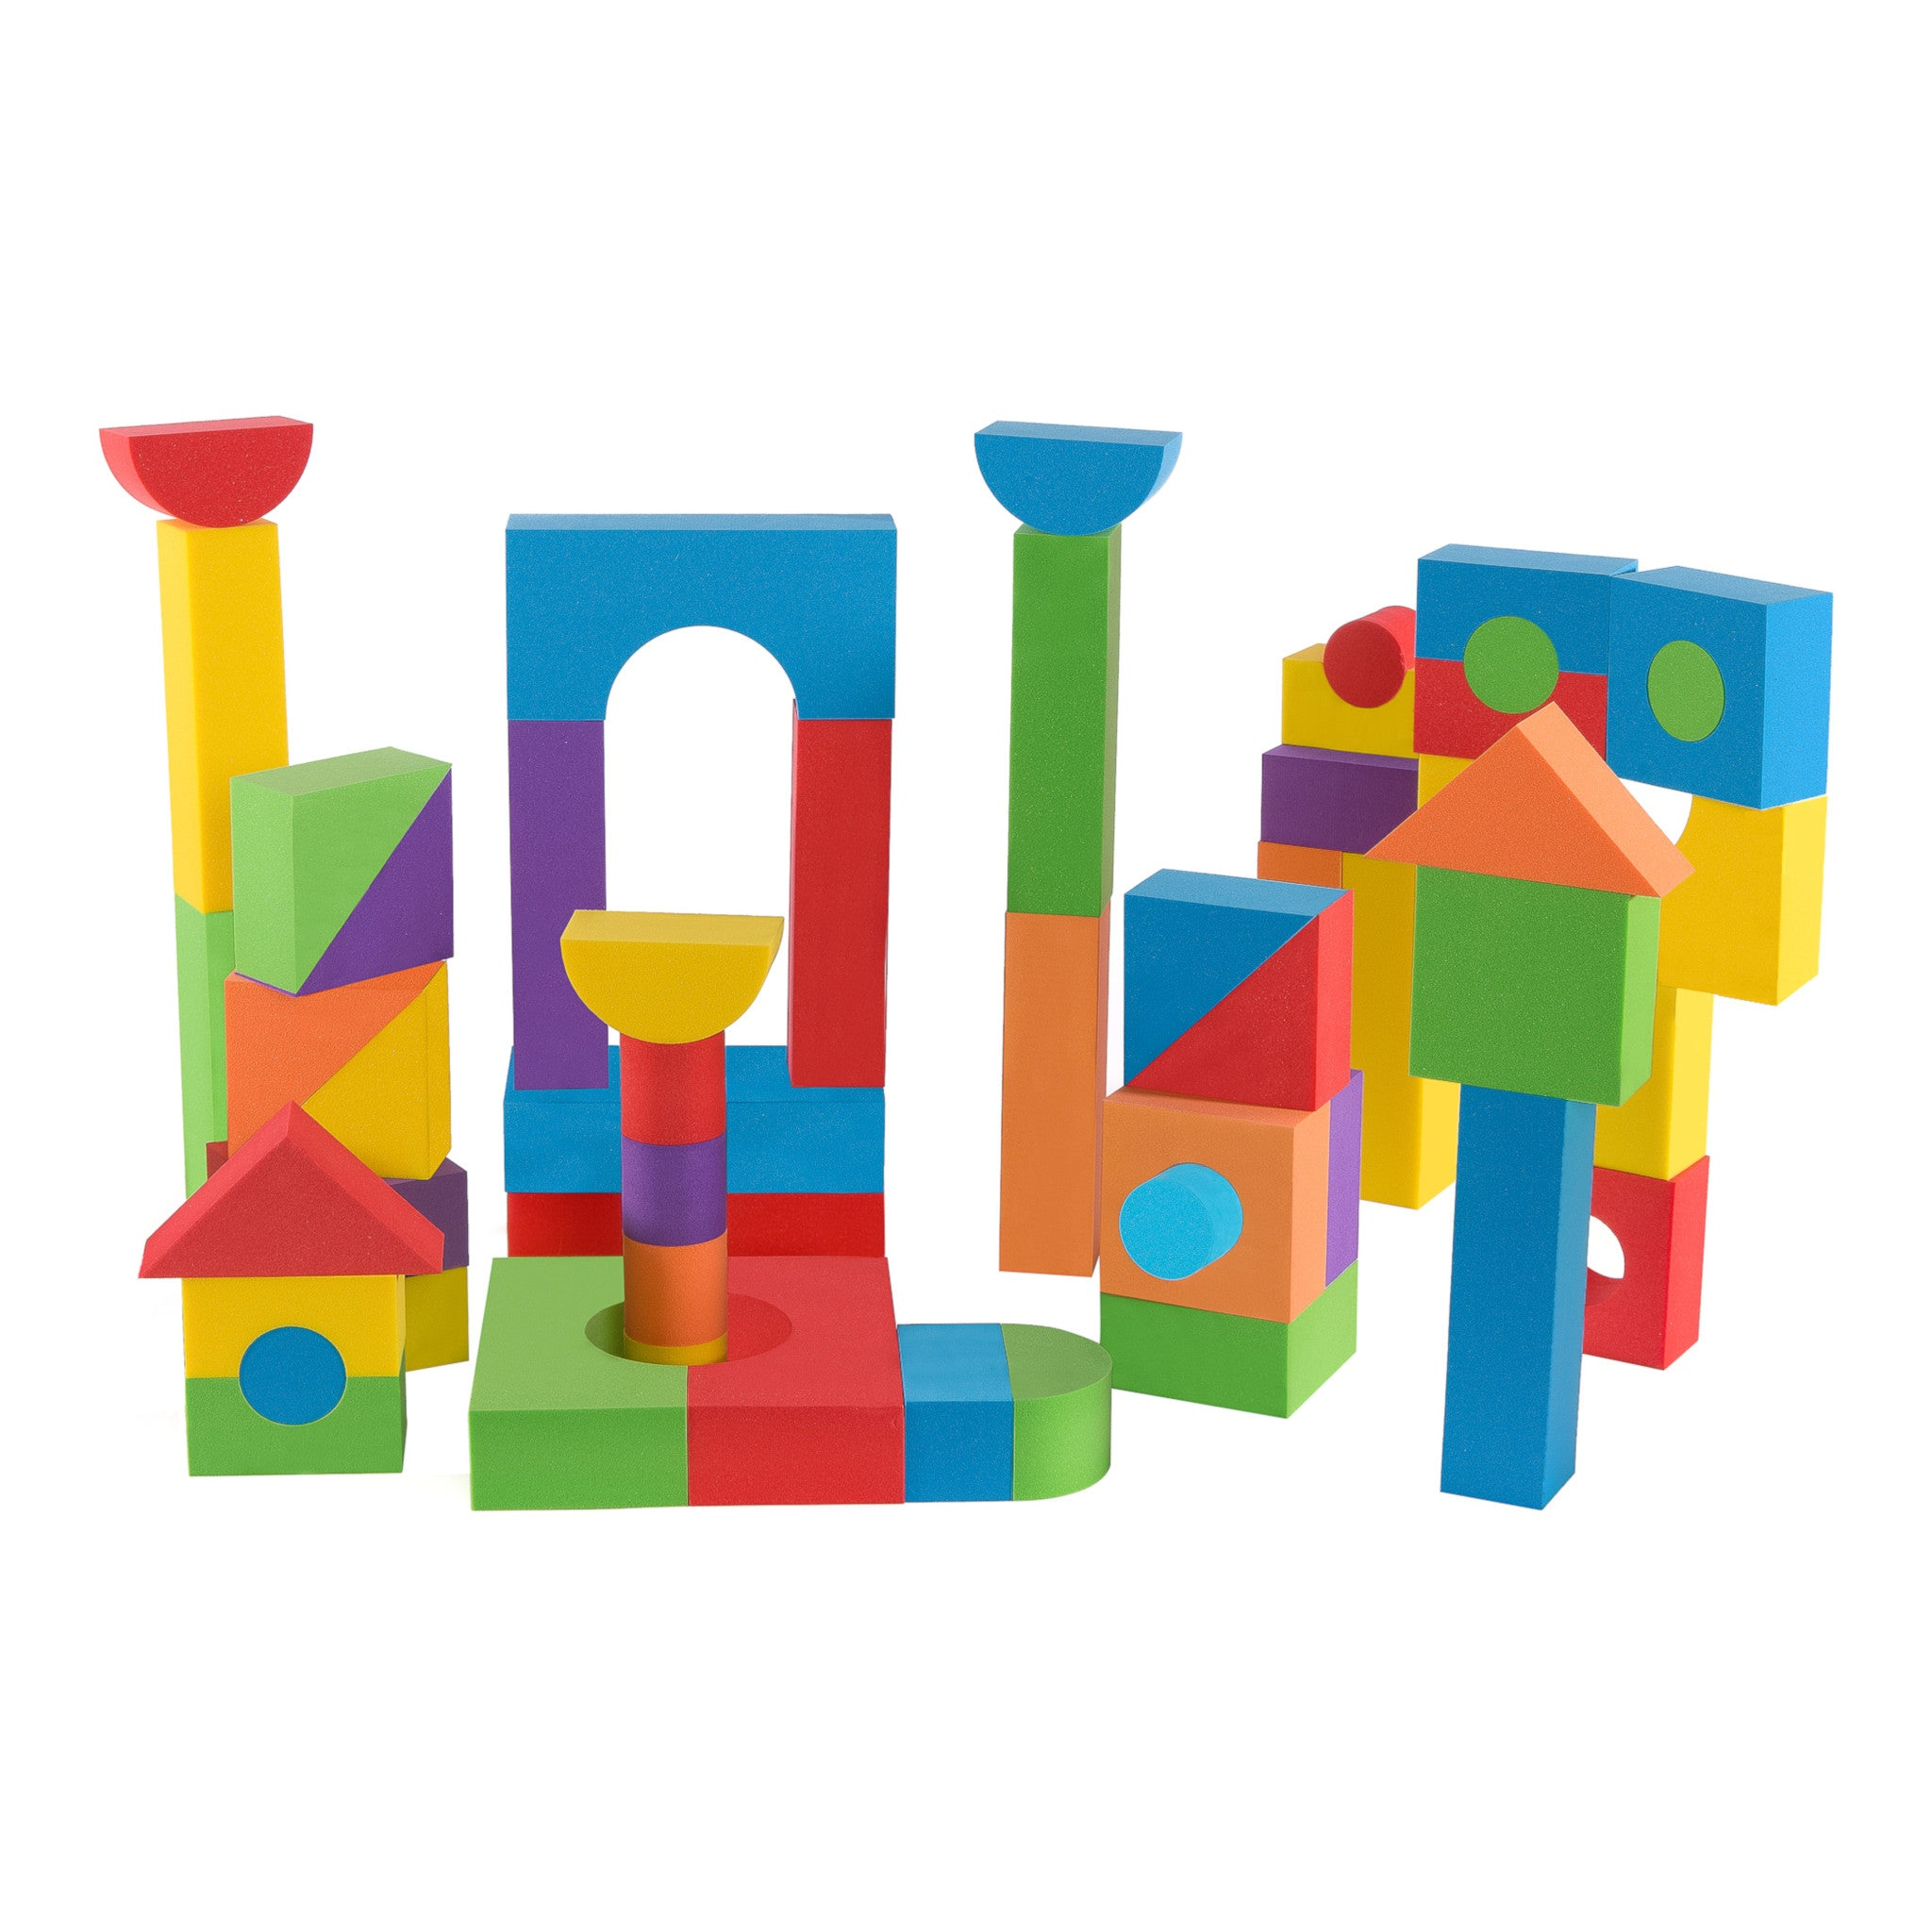 Foam Building Blocks Set for Kids - 68 Pieces